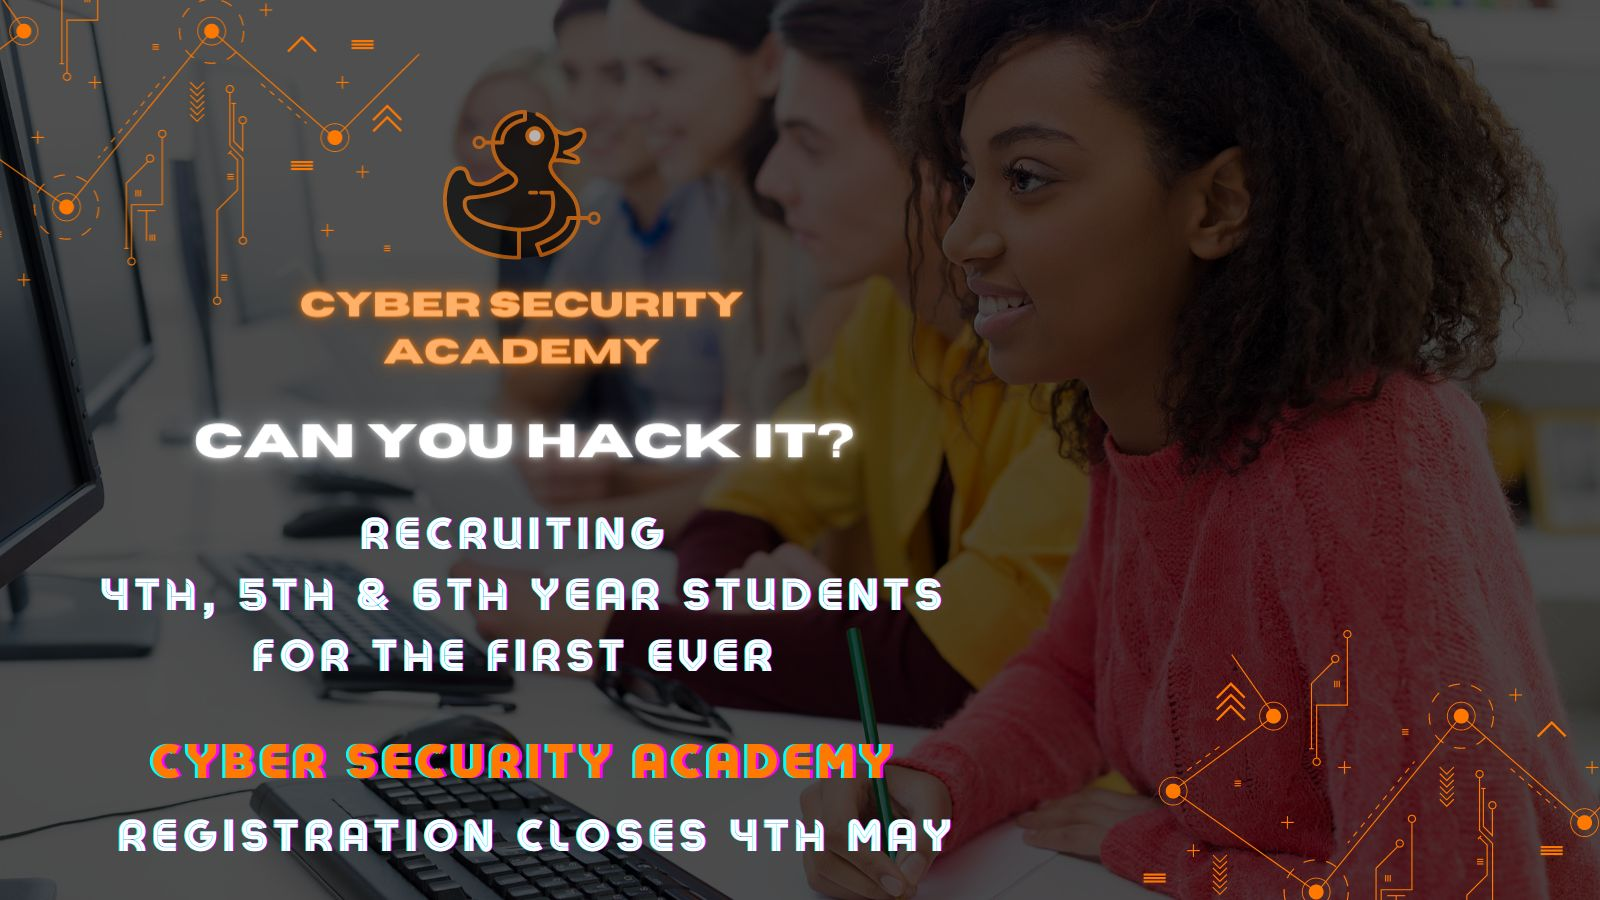 Cyber Security Academy